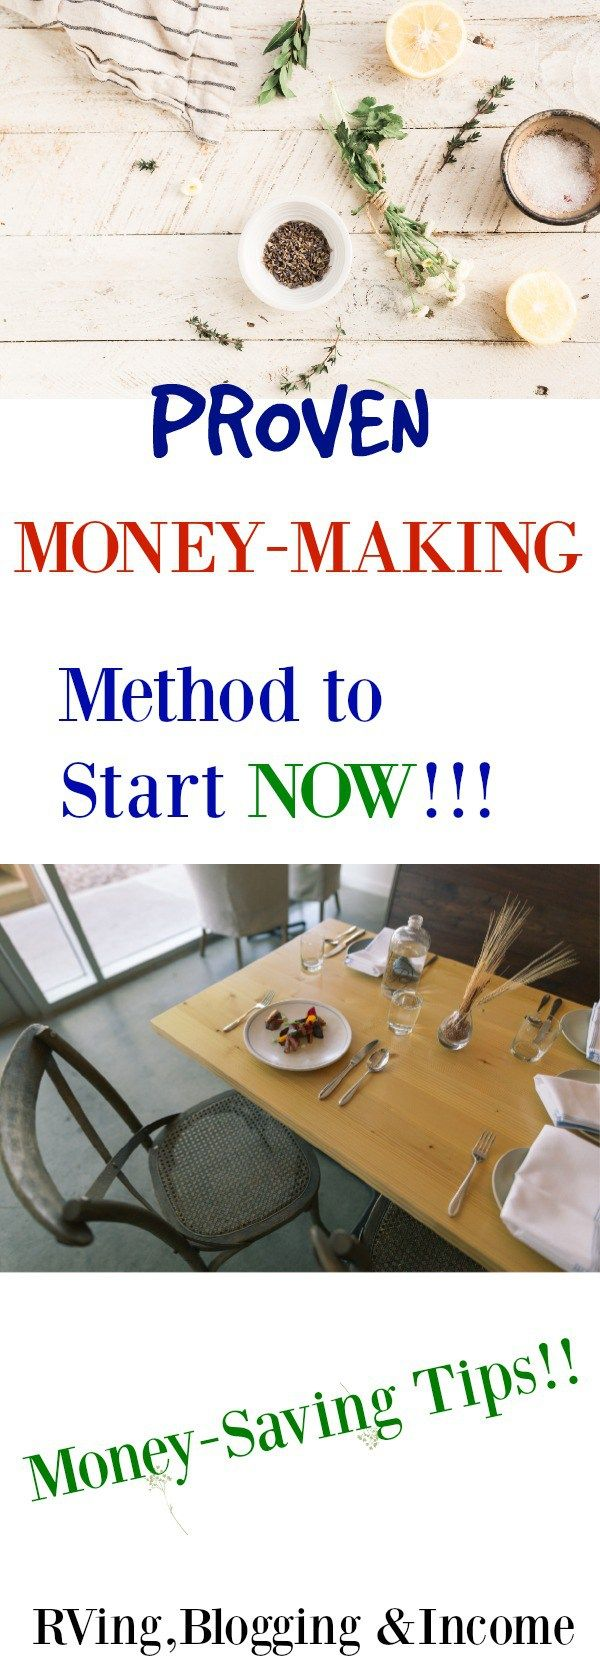 Proven Money-Making Method To Start Today! - RVing, Blogging & Income